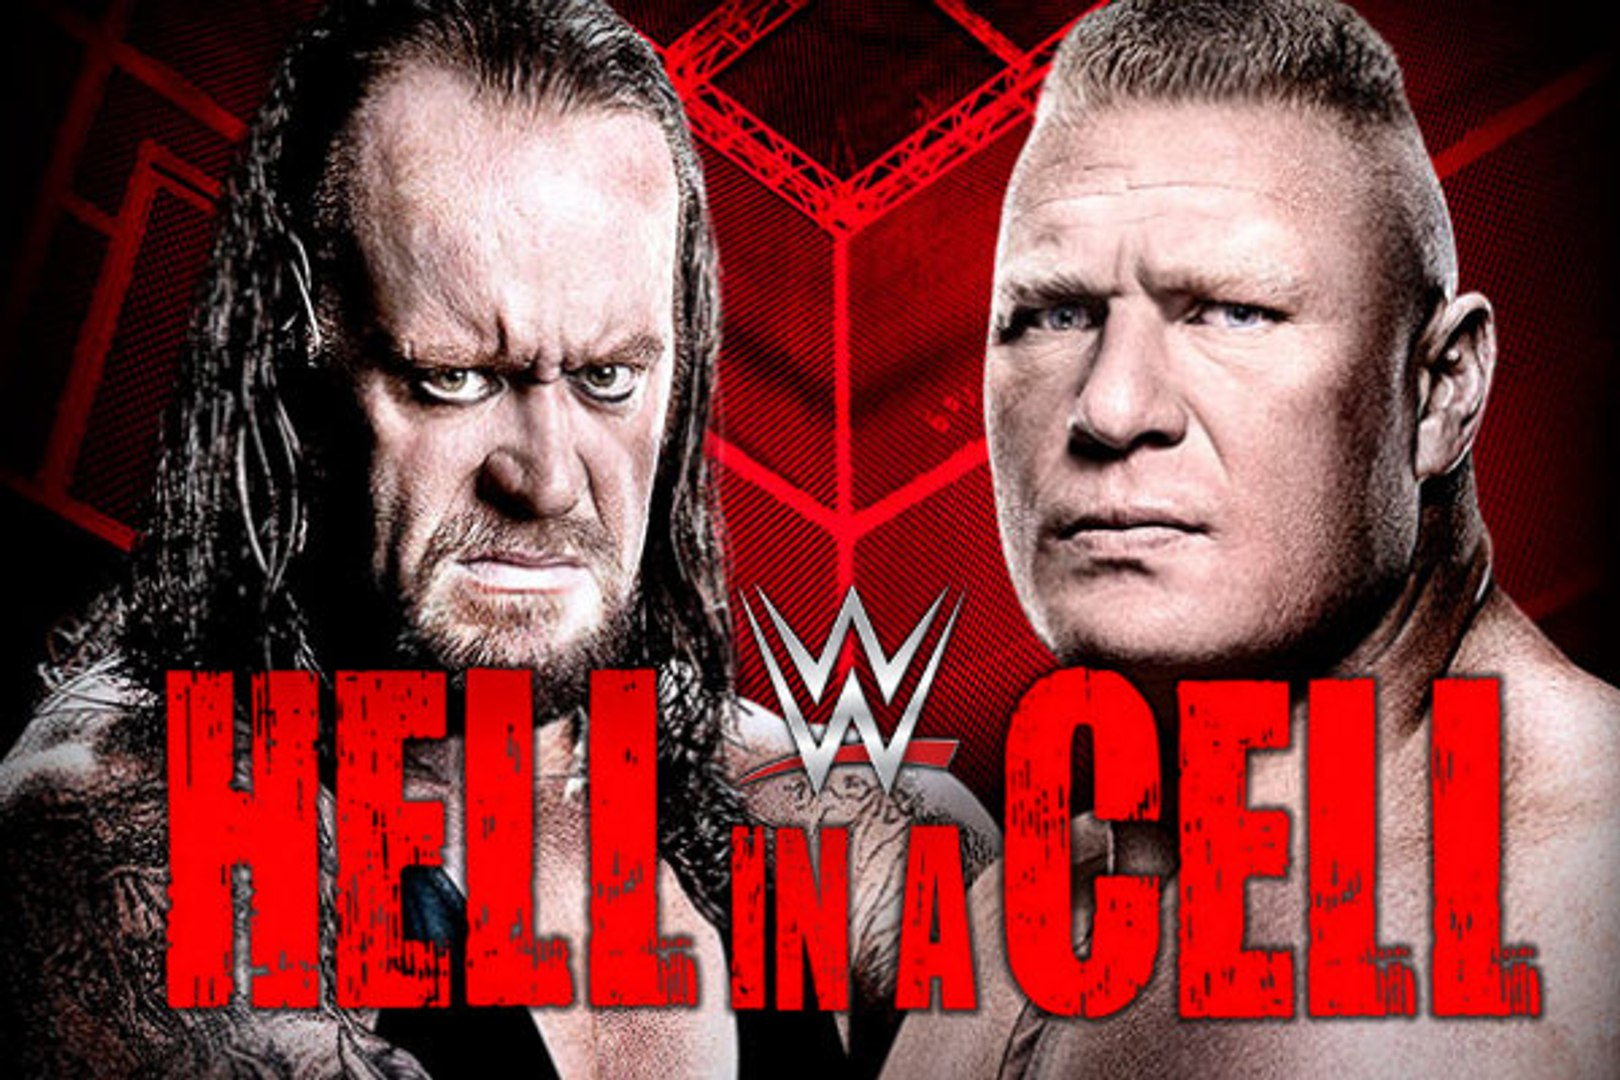 WWE 2015 HELL IN A CELL 2015-Undertaker vs Brock Lesnar Hell In Cell 2015 Match